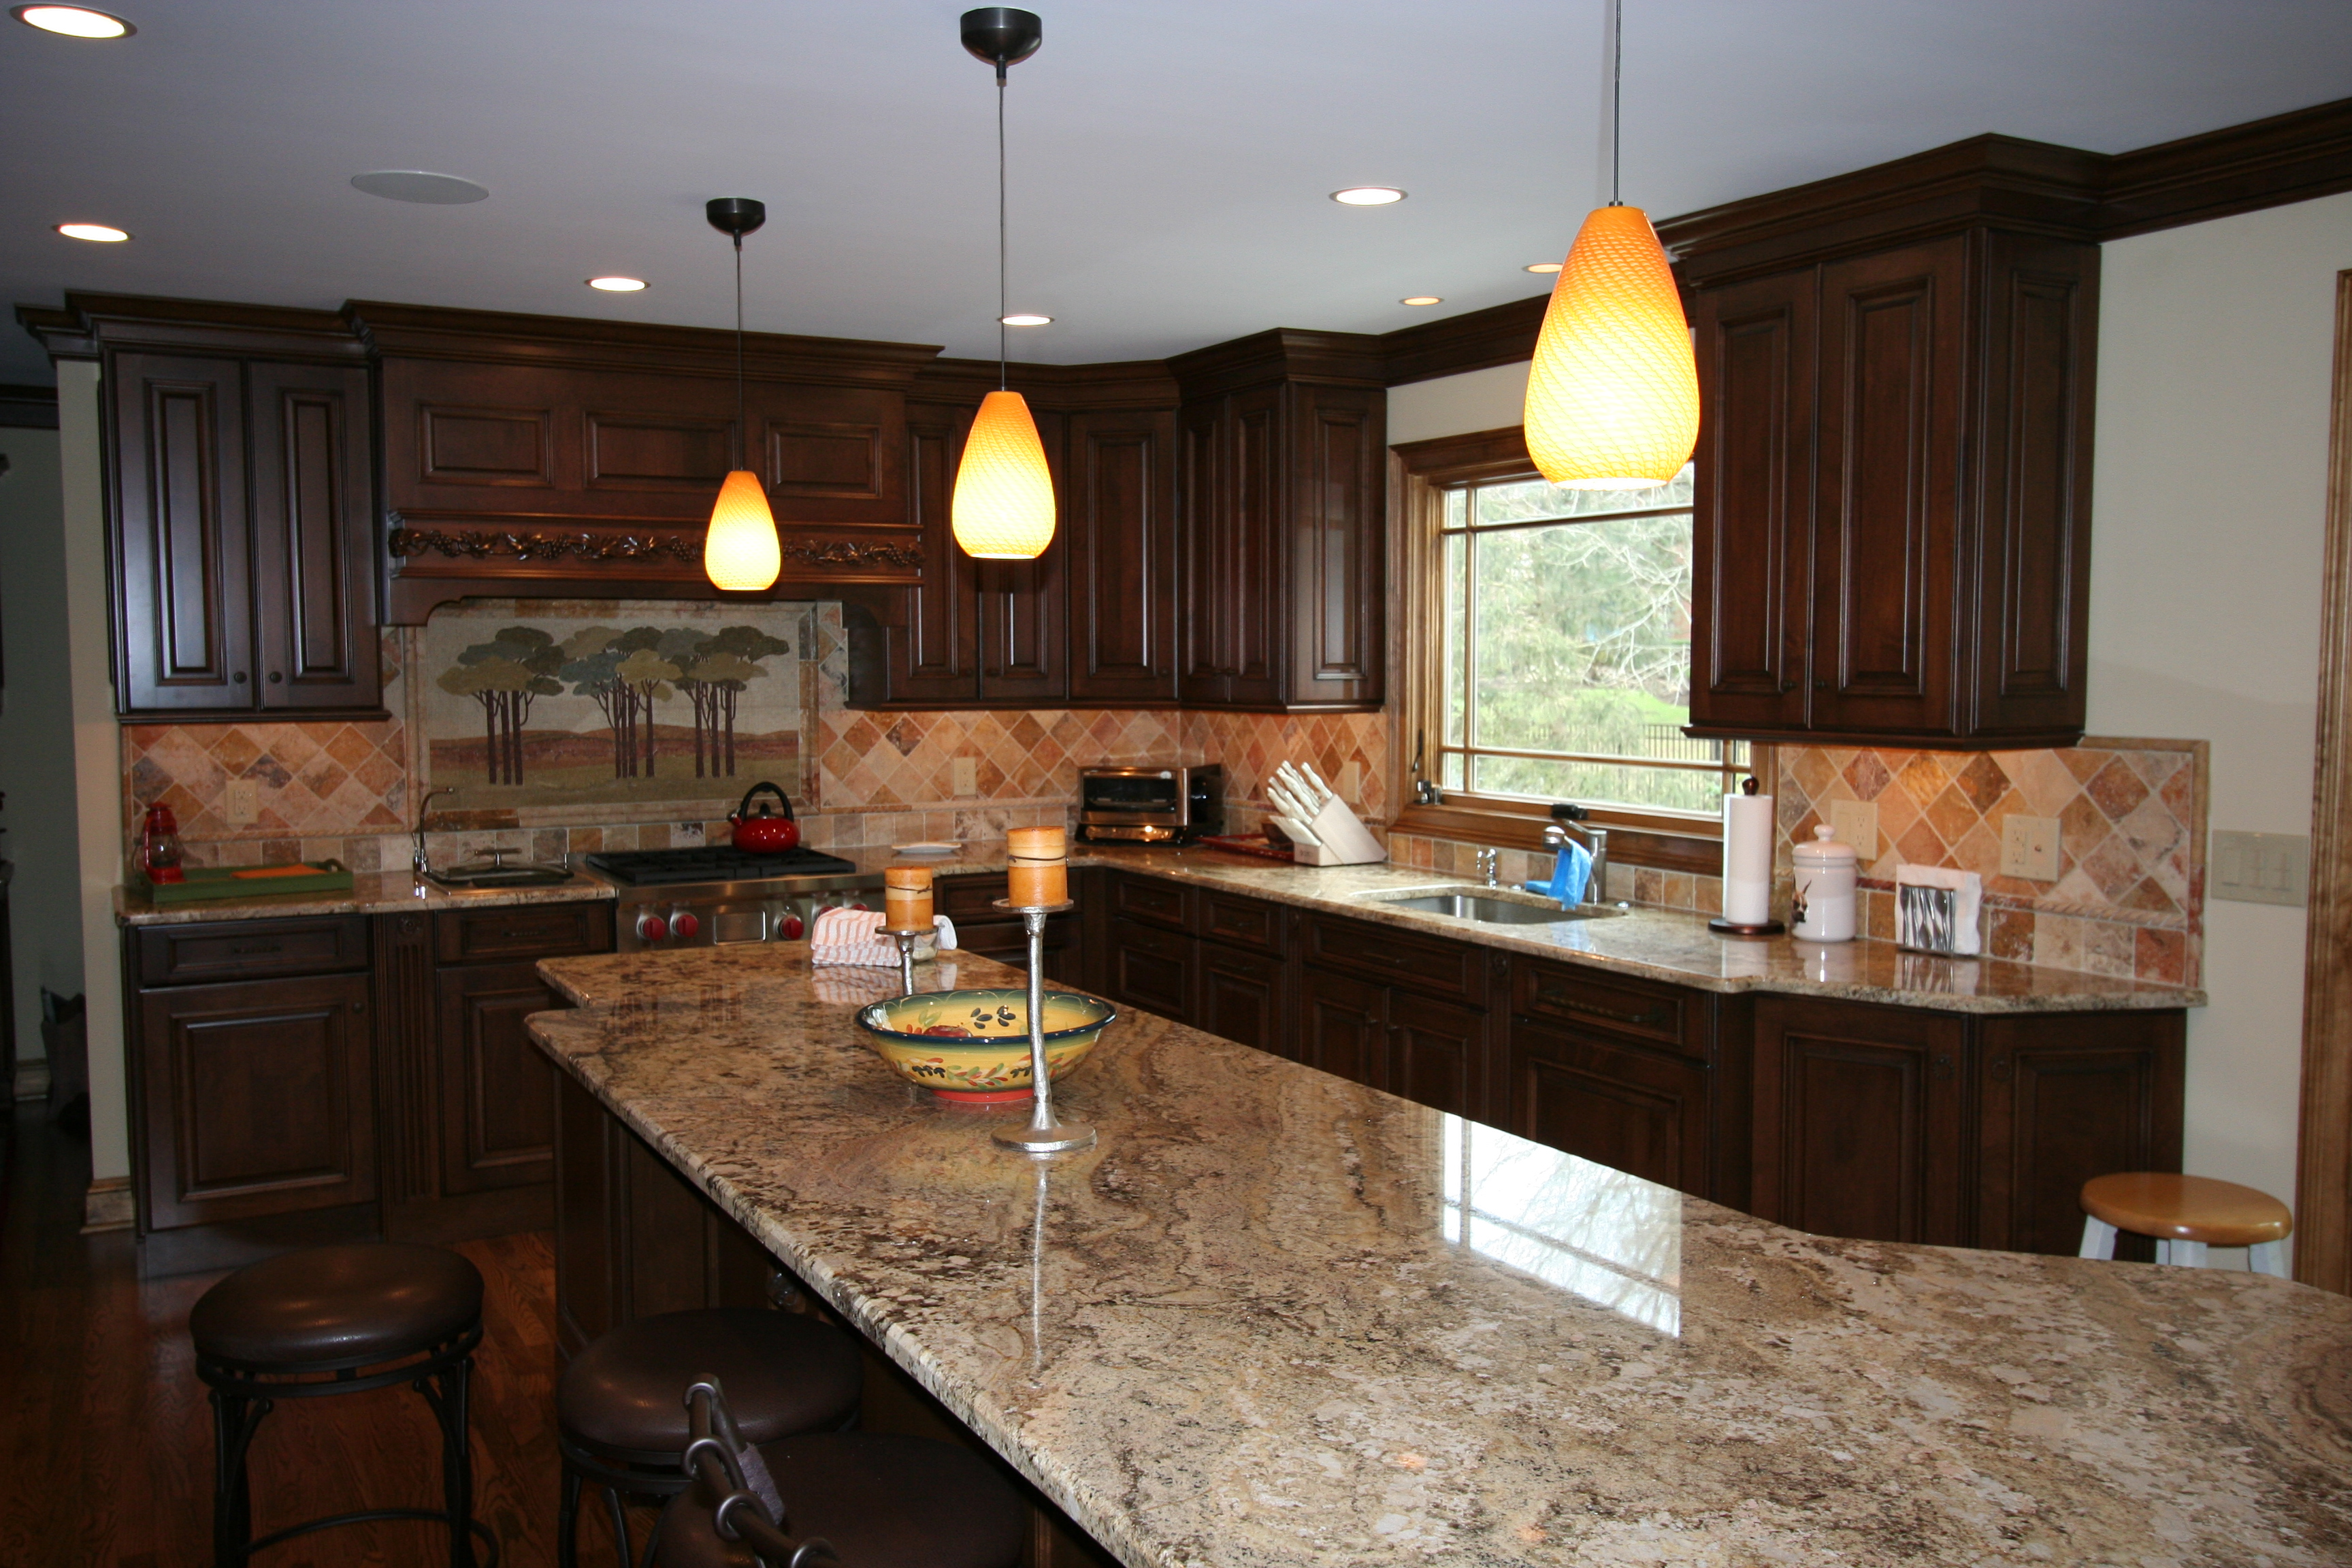 Custer Kitchens Custom Kitchen Cabinets From Brookhaven Installed In New Kitchen